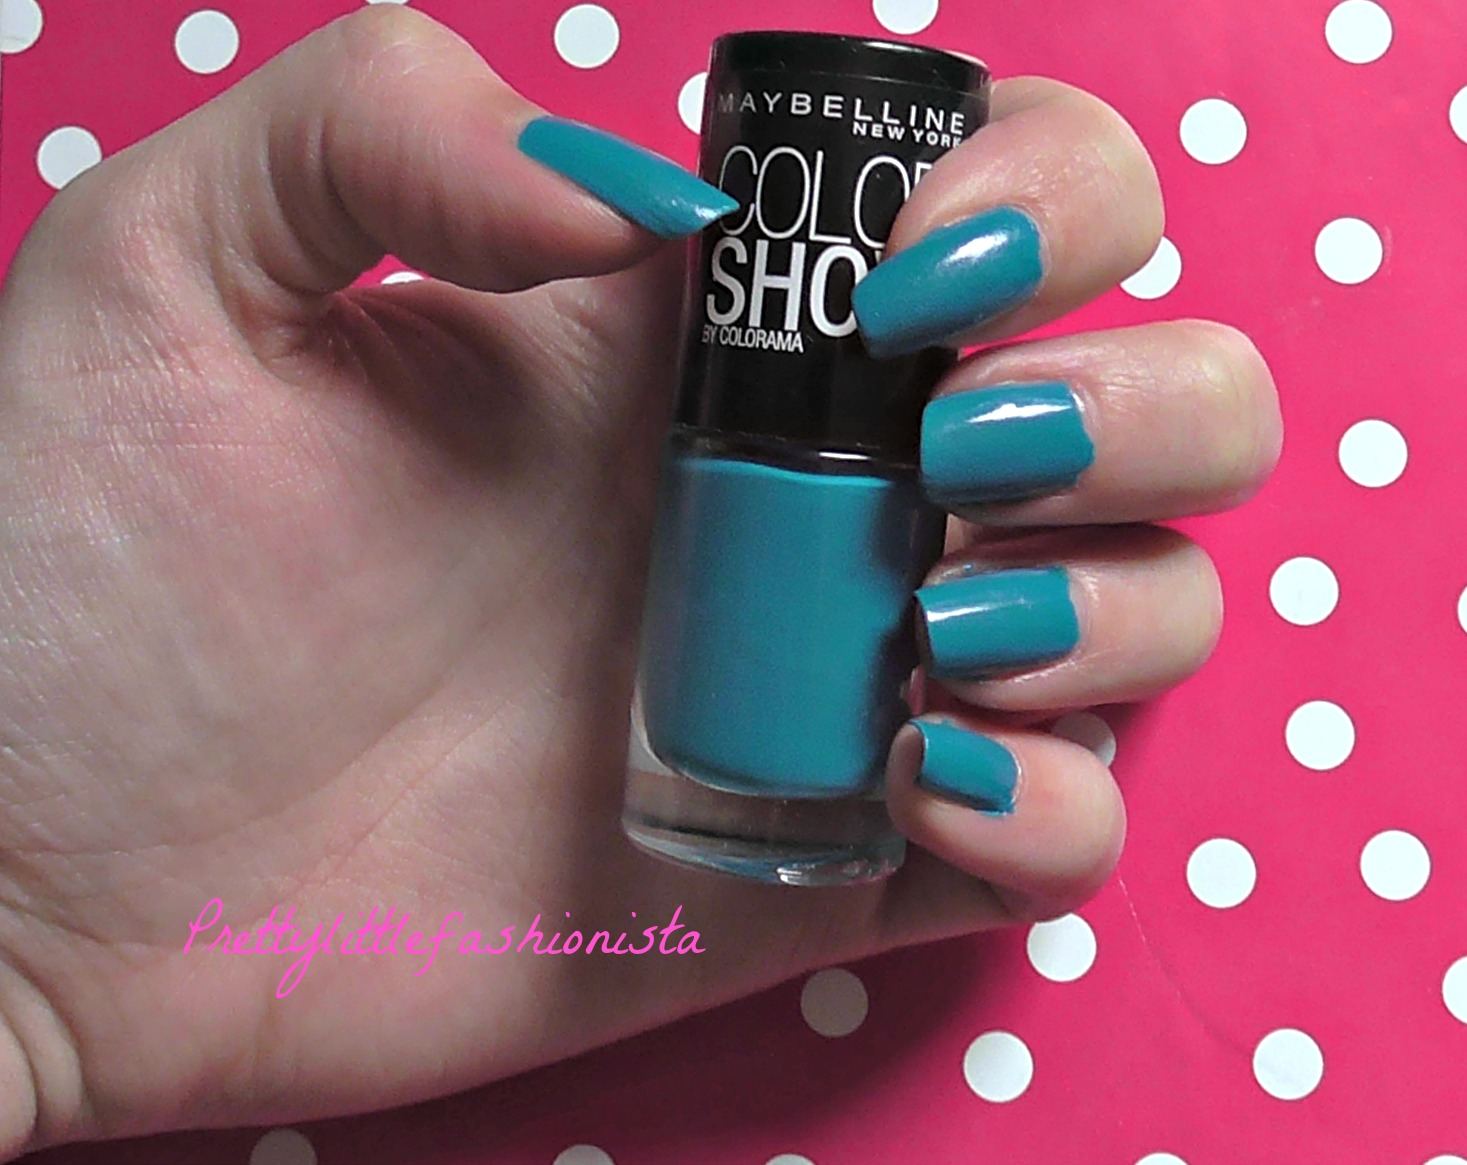 NOTD: Maybelline Superpower Blue